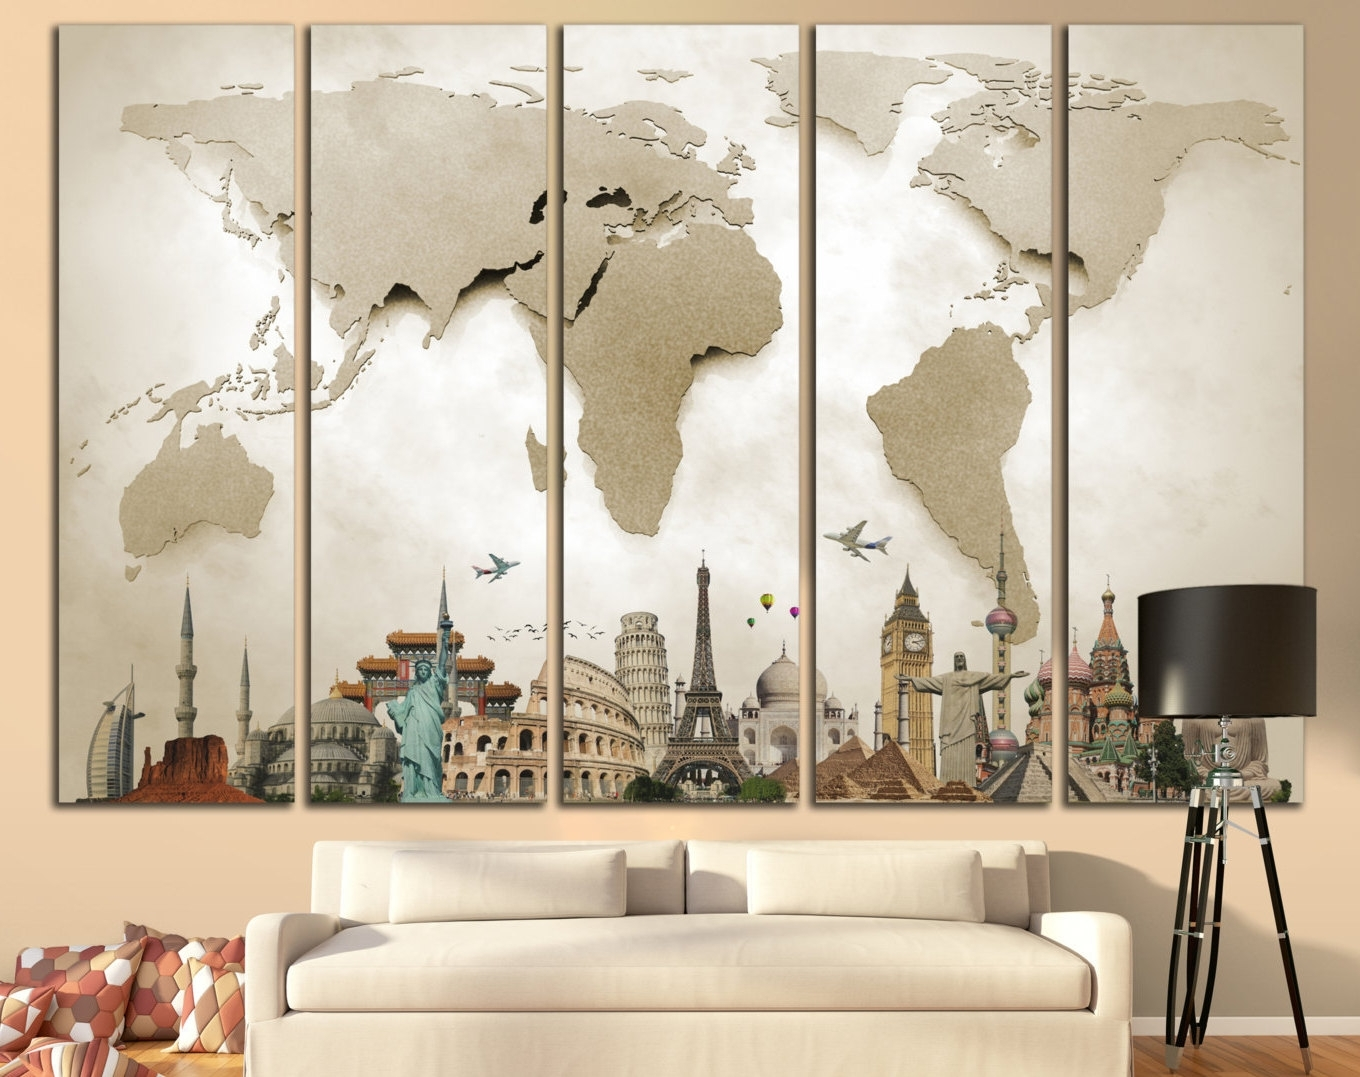 Exclusive Wall Art Pertaining To Recent Exclusive Large Wall Art For Living Room Marvelous Ideas Large (Gallery 3 of 15)